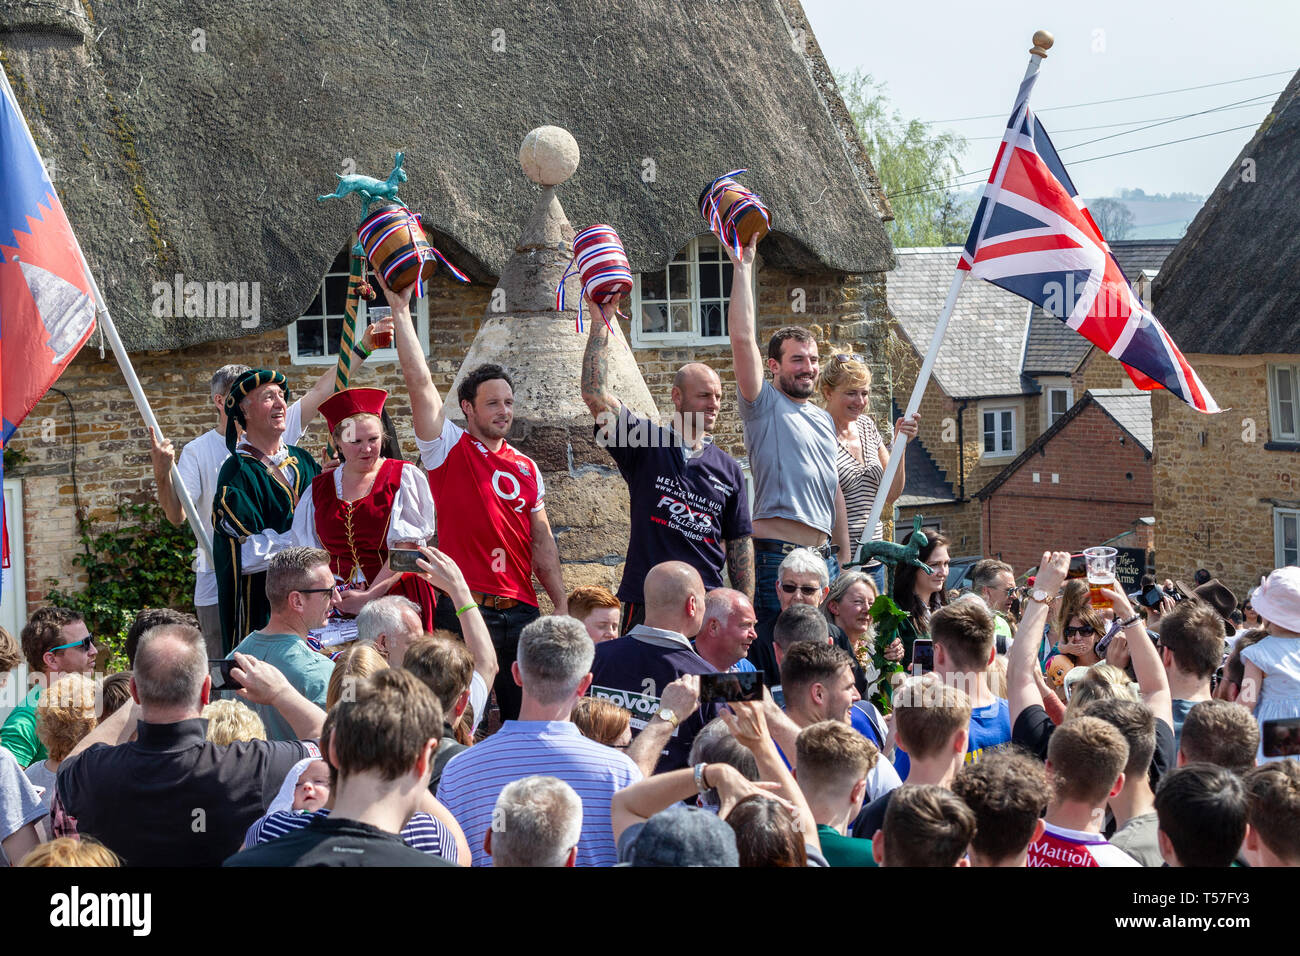 """Hallaton, Leicestershire. 22nd April 2019. Hare Pie Scramble & Bottle Kicking, this is an ancient custom in two distinct parts. The first is a procession, baskets of bread and the eponymous Hare Pie (believed to be minced beef these days), once at the church gate, the pie is blessed and distributed to the crowds and the second is a mass """"ballgame"""" played with small wooden casks called bottles between the villages of Hallaton and Melbourne. Credit: Keith J Smith./Alamy Live News - Stock Image"""